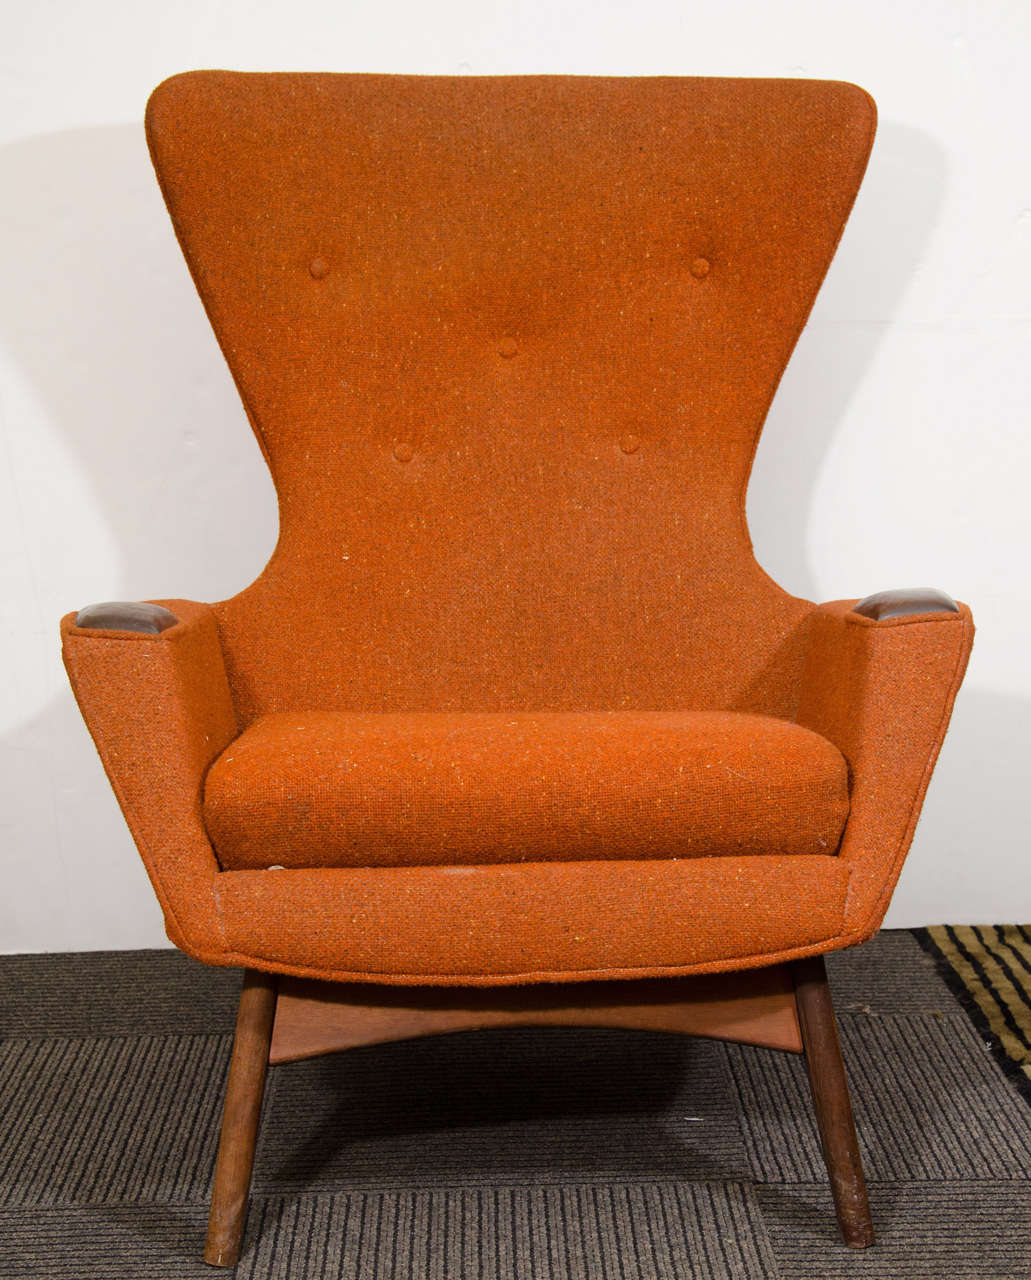 Midcentury High Back Wing Chair By Adrian Pearsall At 1stdibs